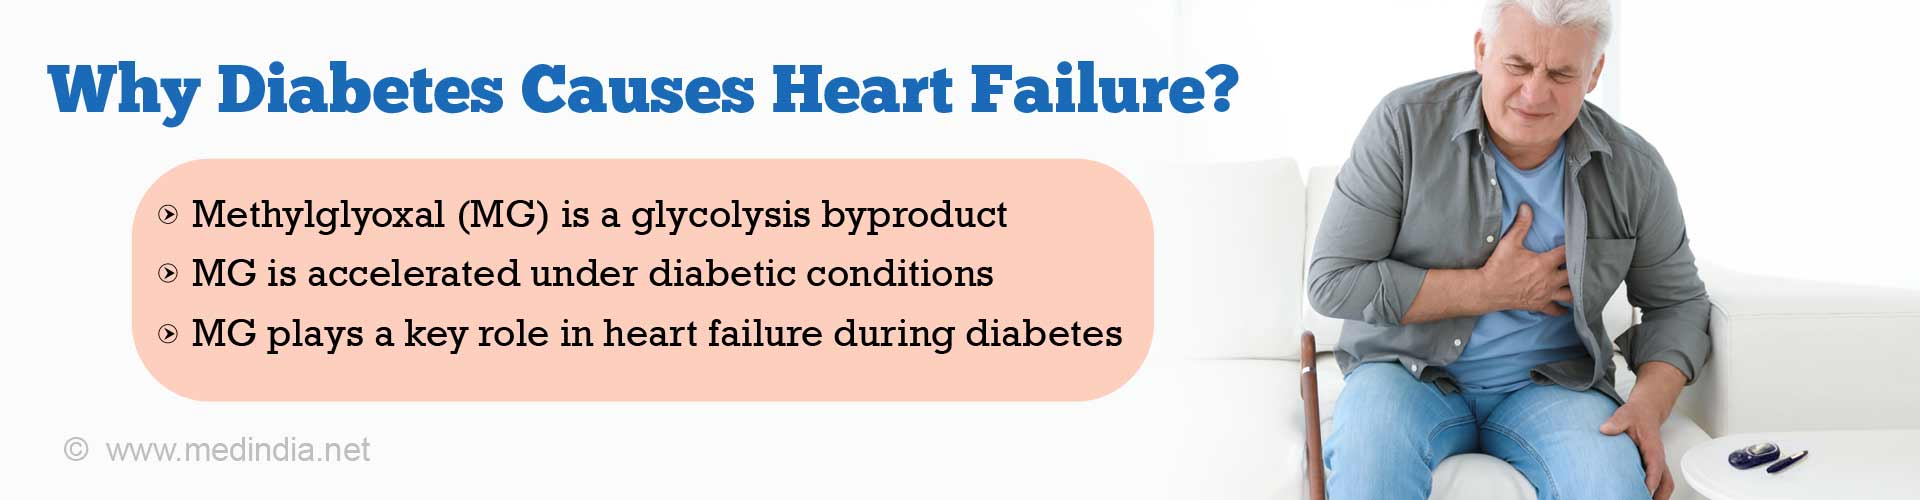 Why diabetes causes heart failure? Methylglyoxal (MG) is a glycolysis byproduct. MG is accelerated under diabetic conditions. MG plays a key role in heart failure during diabetes.